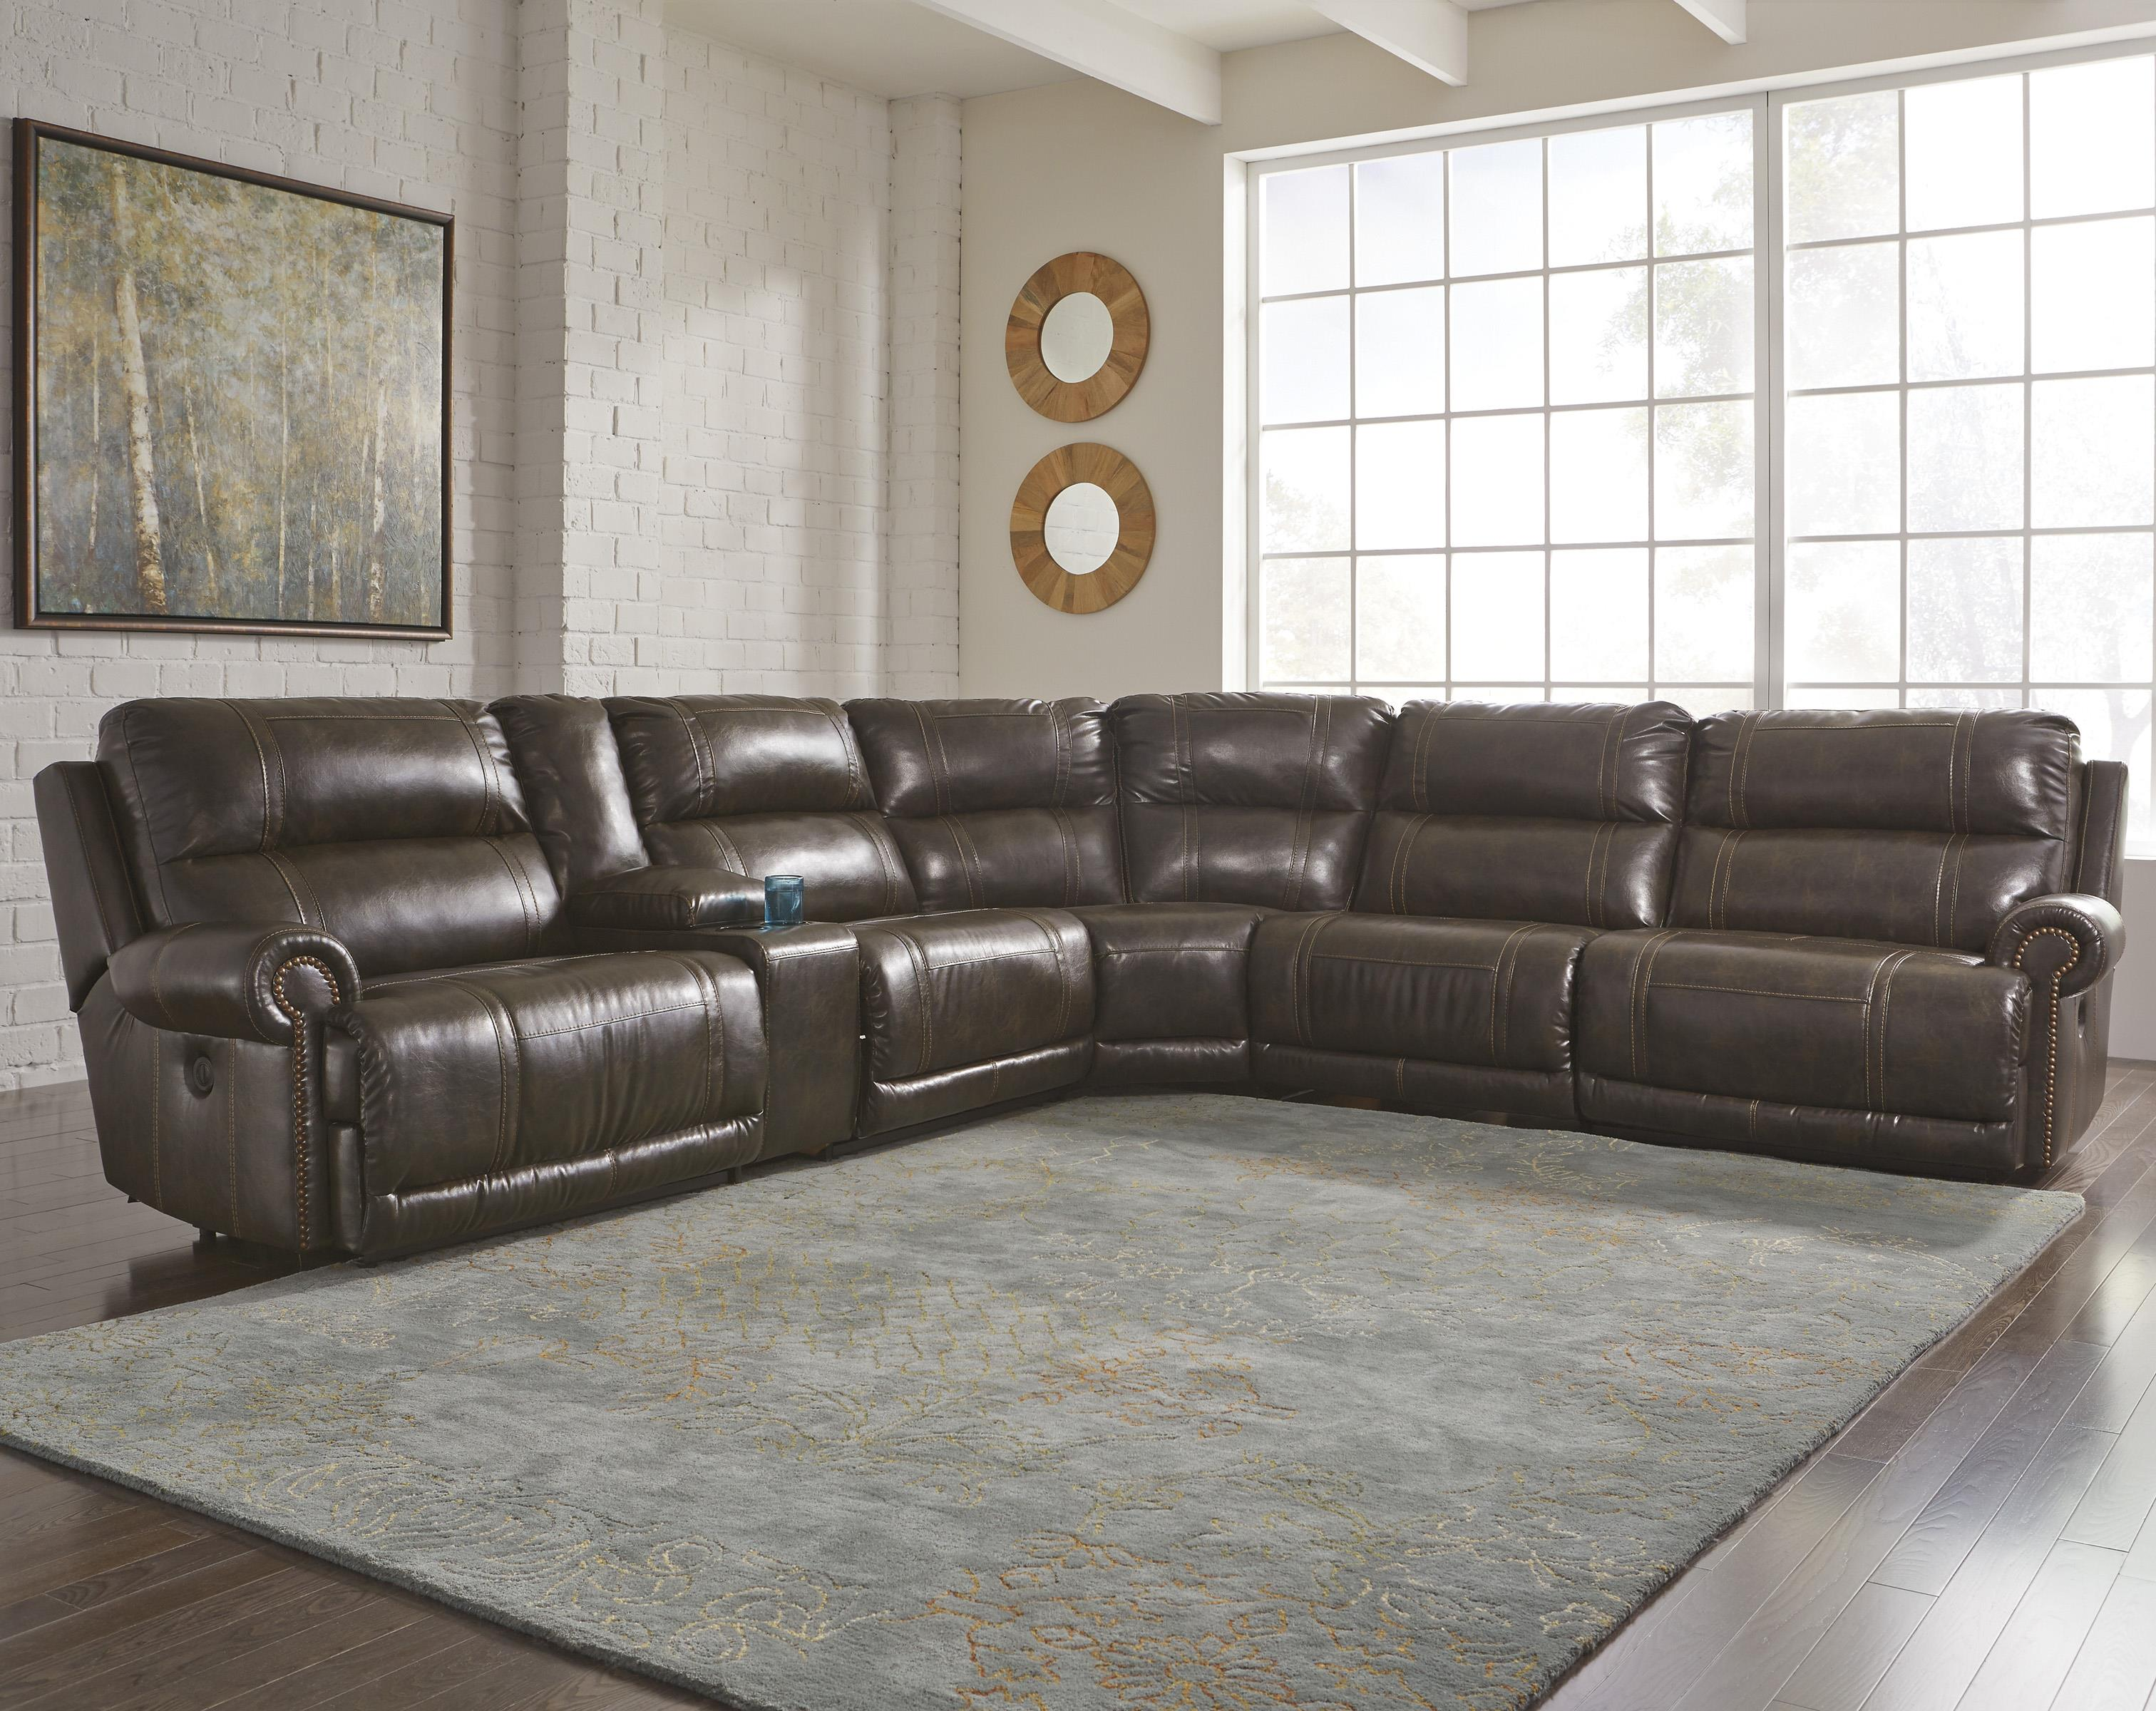 6-Piece Power Reclining Sectional with Storage Console u0026 Armless Recliner : sectional power recliner - Sectionals, Sofas & Couches